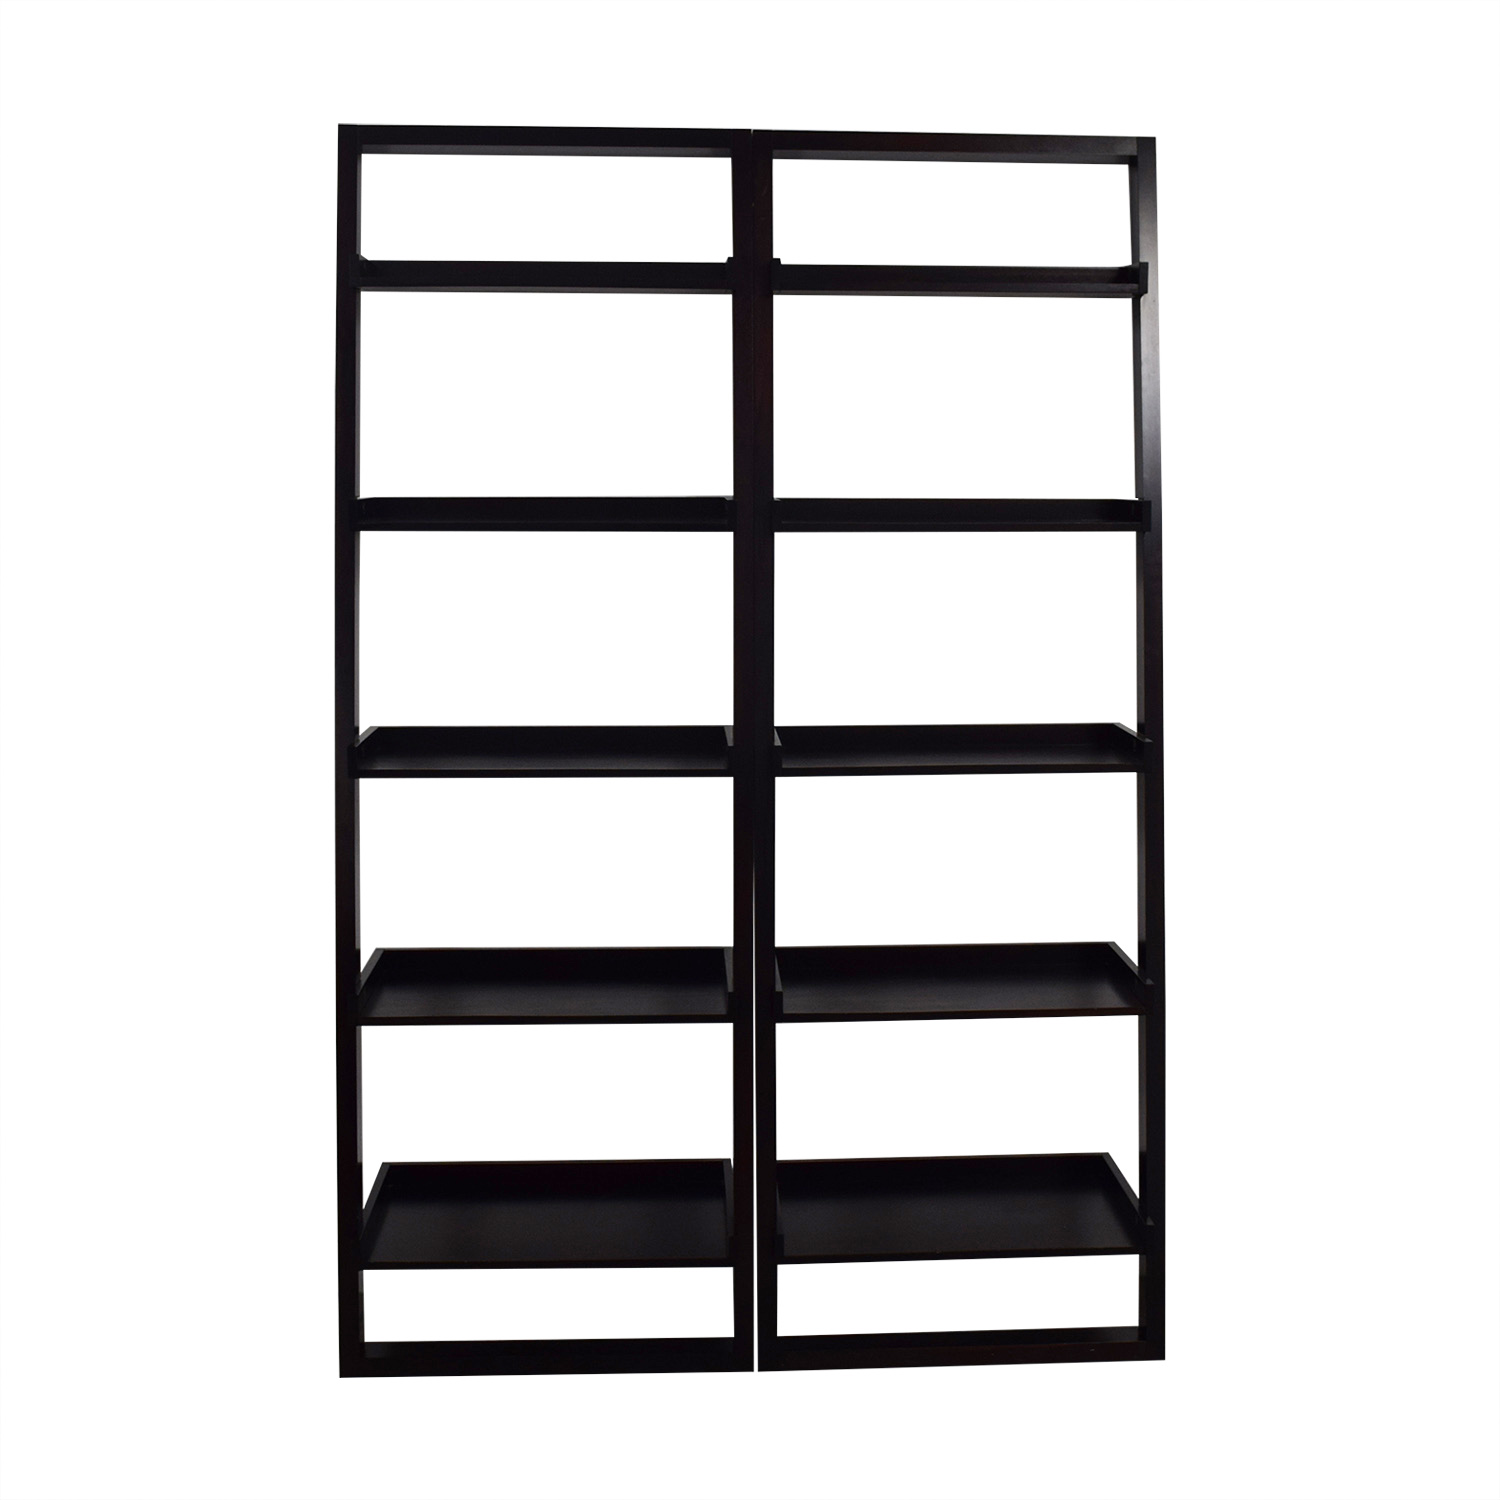 Crate & Barrel Crate & Barrel Leaning Bookshelves discount